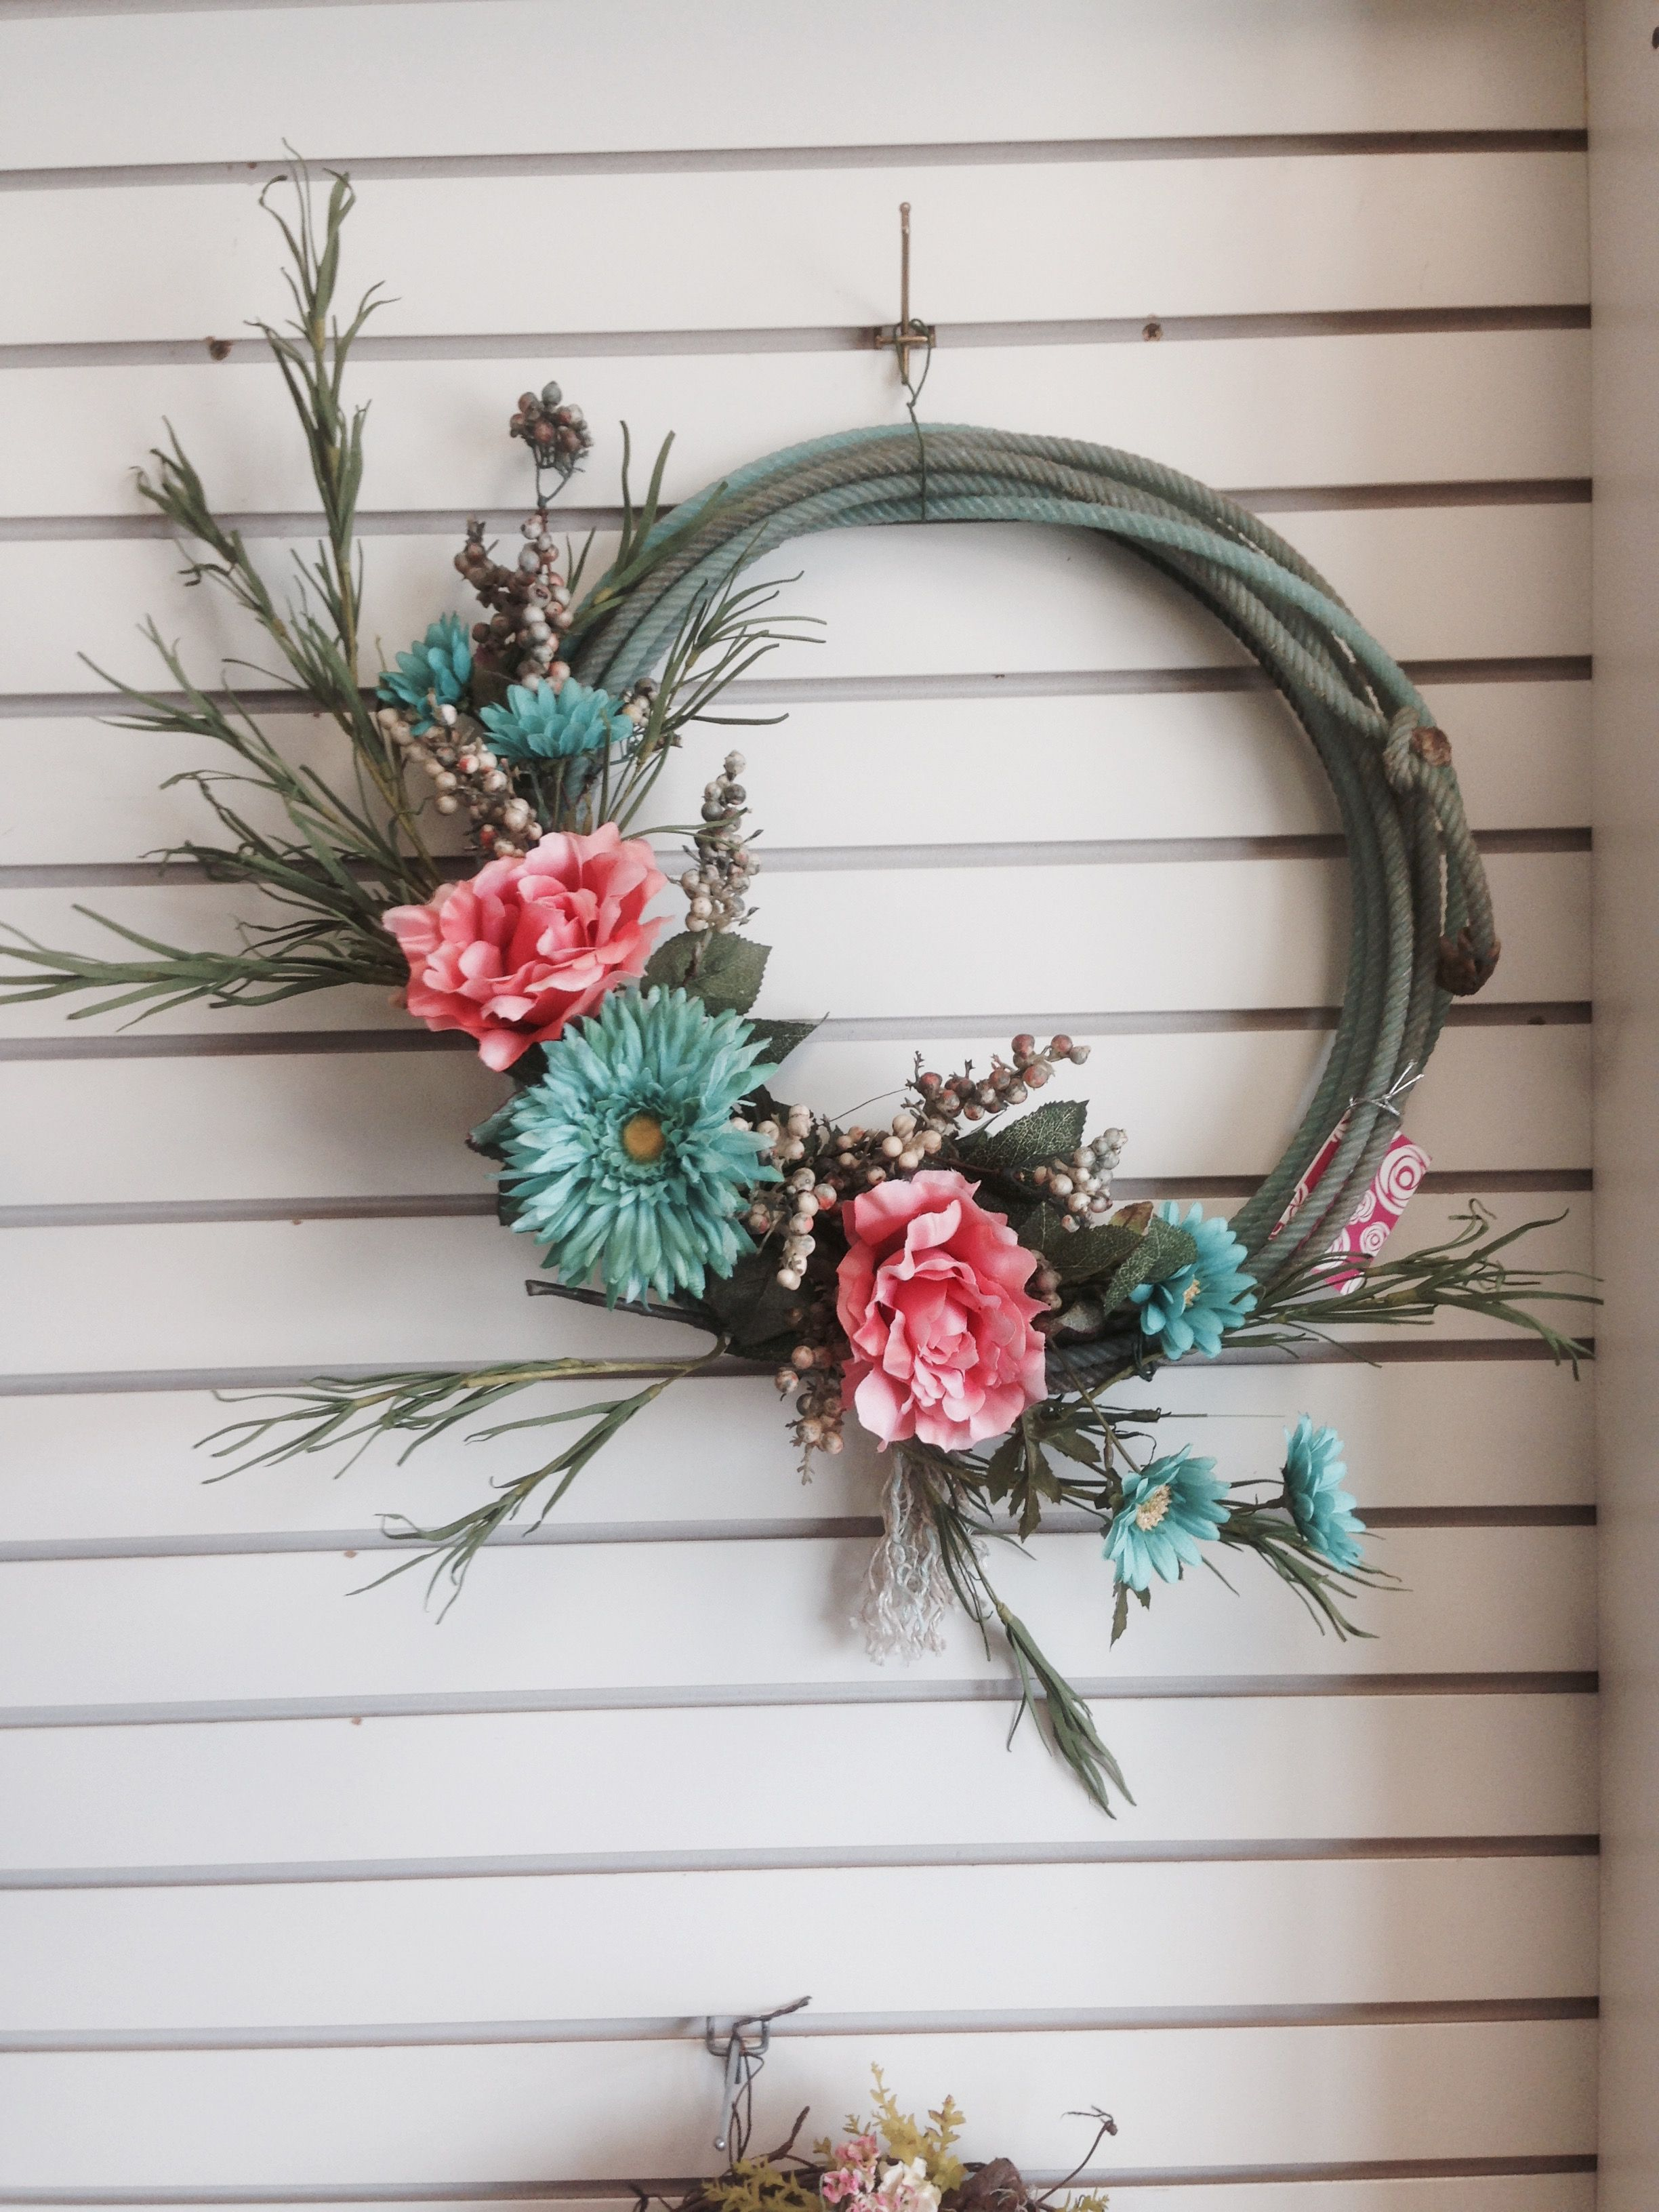 Rustic Merry Christmas Signs Mint Sunflower, Pink Peony Lariat Rope Wreath. Western